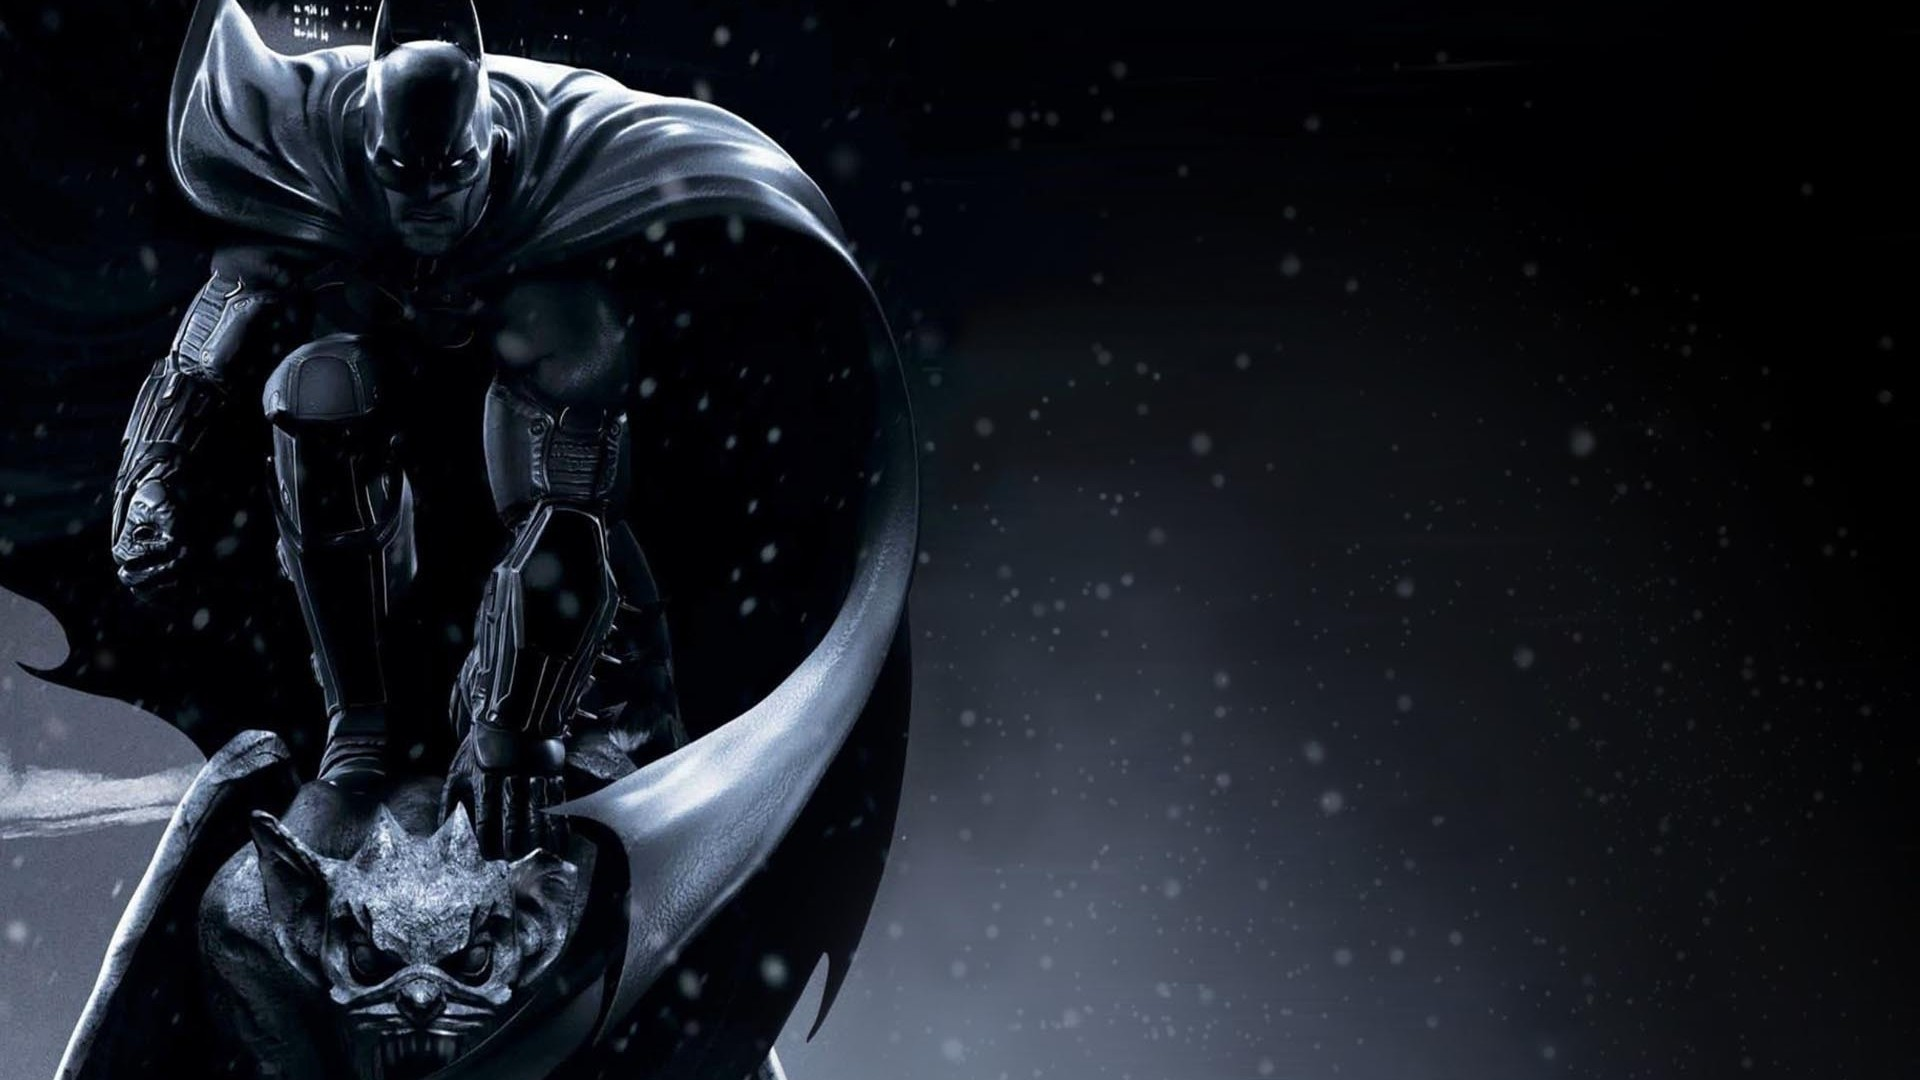 1920x1080 Batman - Arkham Origins HD Wallpaper  Batman ...